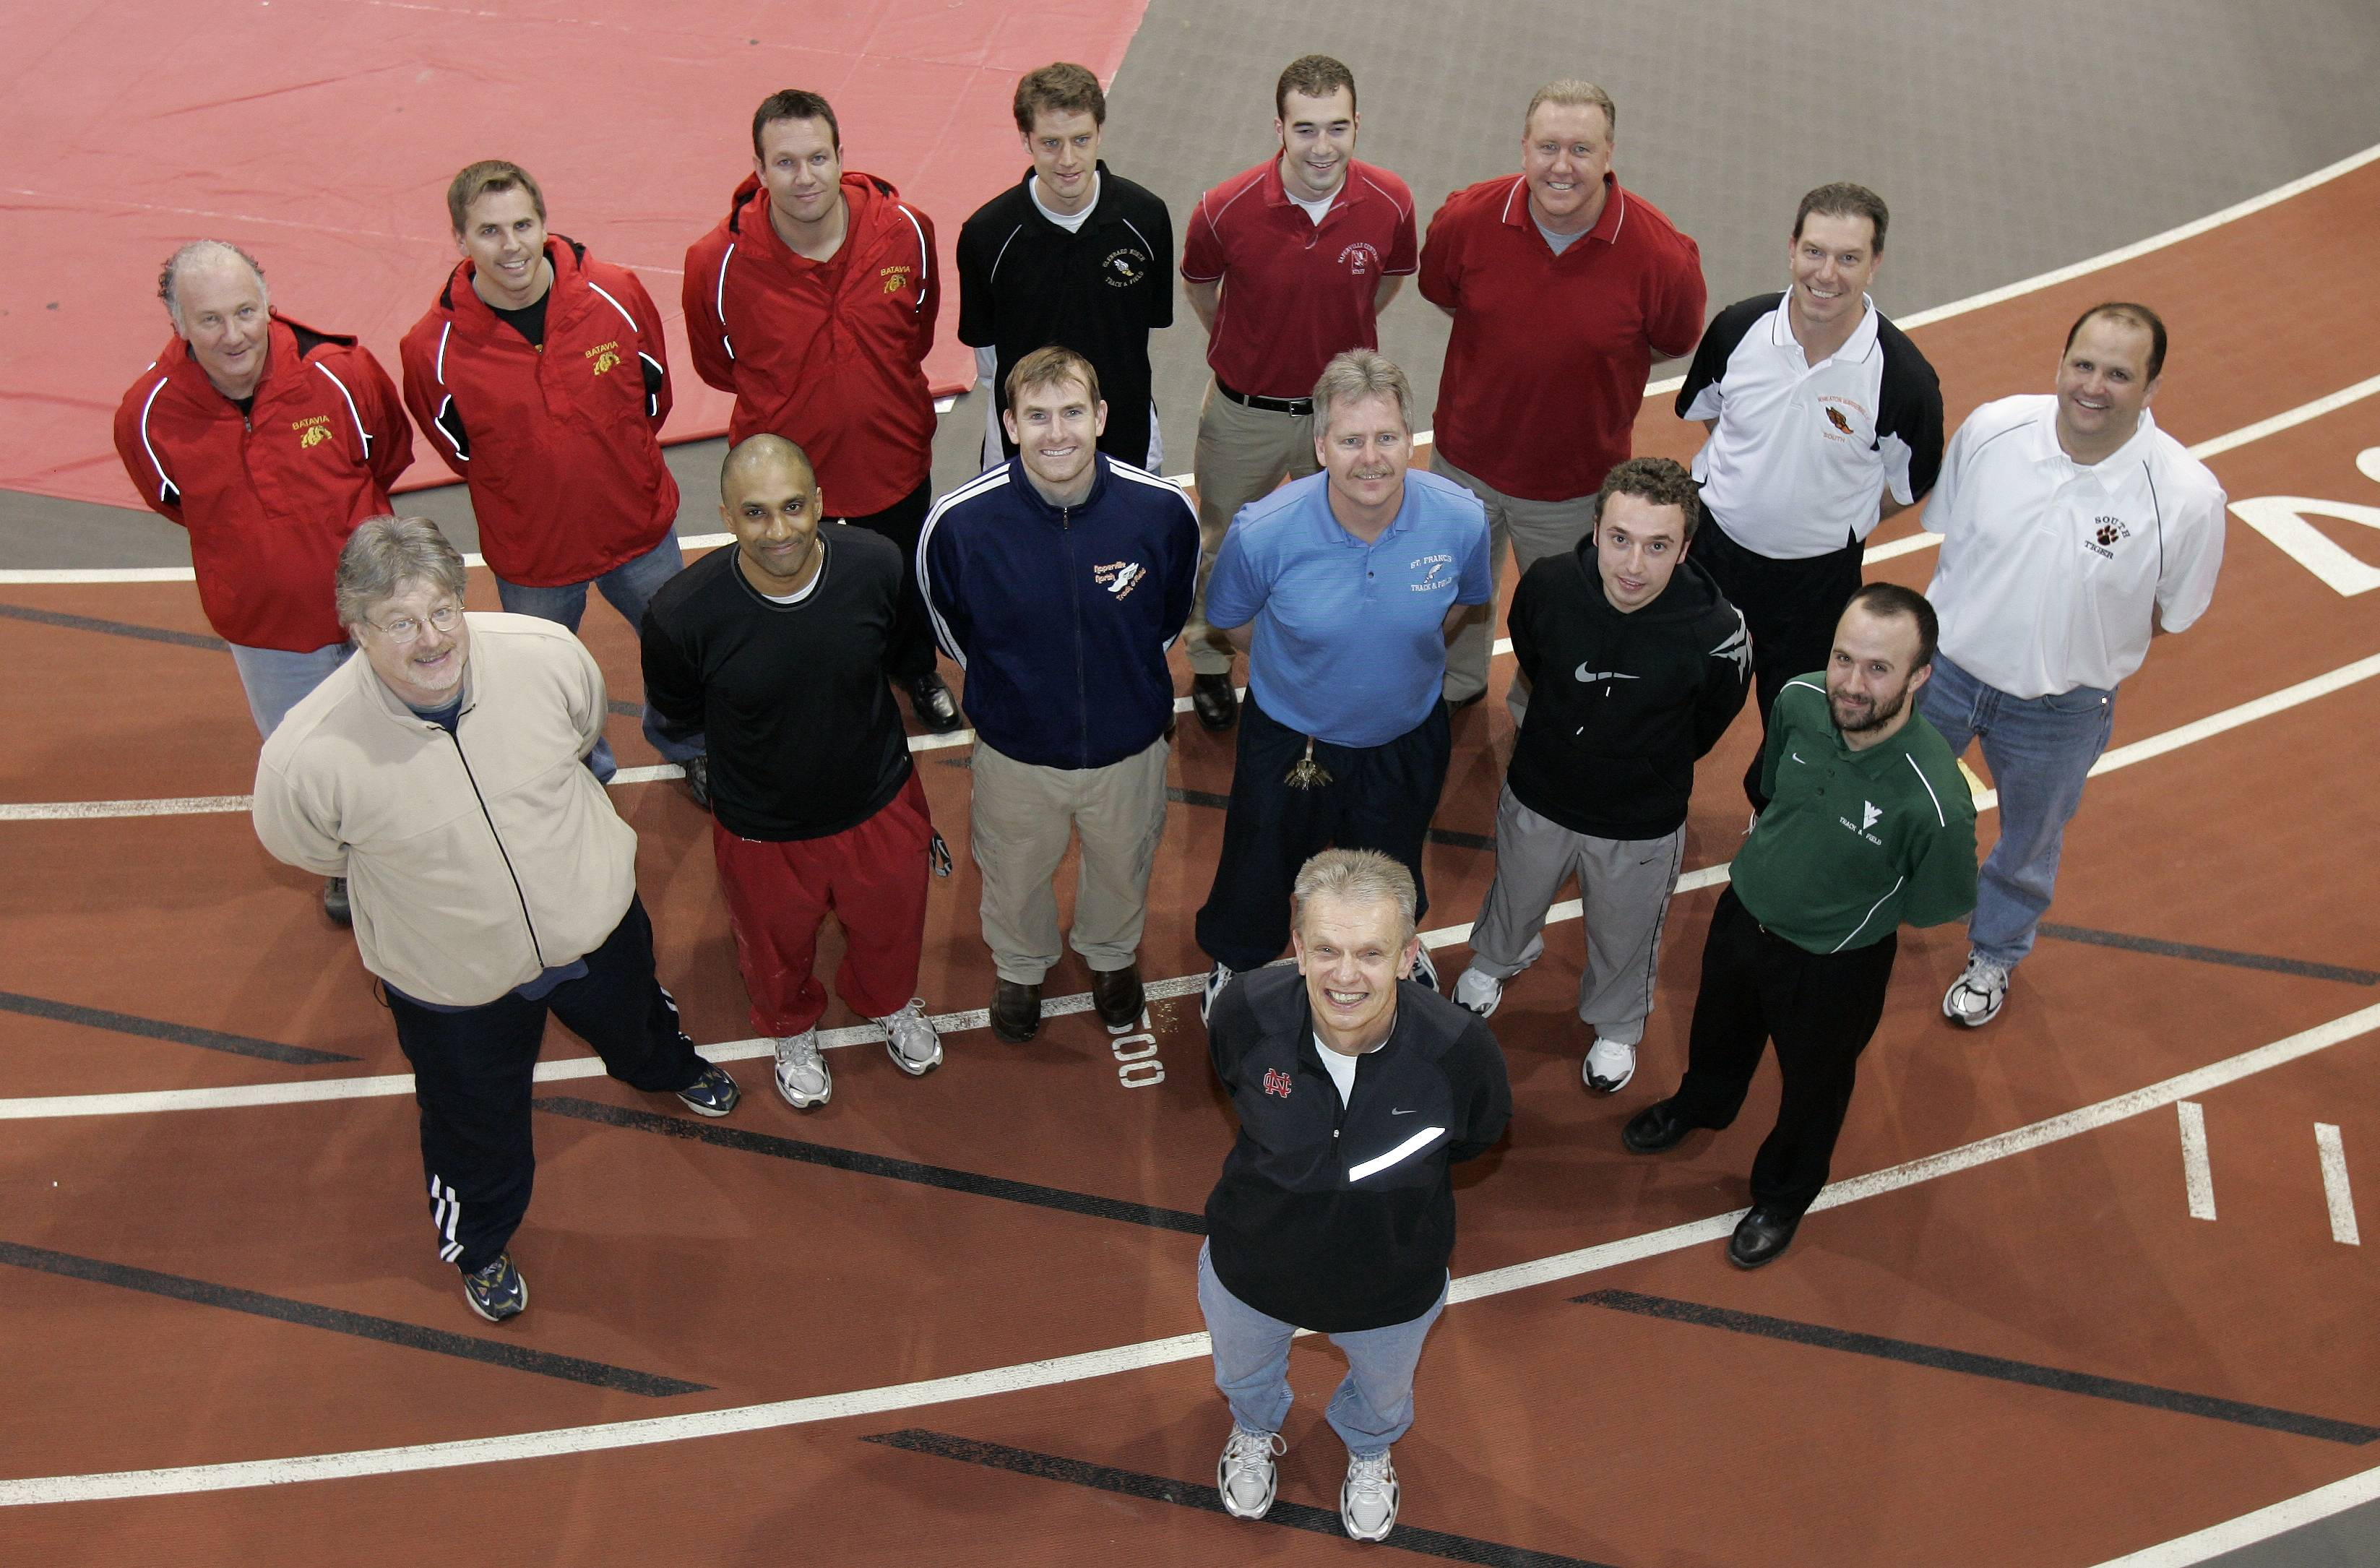 Local track coaches who are former athletes of lengendary North Central track coach Al Carius (BACK ROW) Chris Wheaton of Batavia, Chad Hillman of Batavia, Dennis Piron of Batavia, Jim Dickerson of Glenbard North, Dave Ashton of Naperville Central, Don Helberg of Wheaton North, Ken Helberg of Wheaton Warrenville South, Rob Harvey of Wheaton Warrenville South. (MIDDLE ROW) Tom Whitaker of North Central College, Mahesh Narayanan of North Central College, Chuck Hoff of Naperville North , Scott Nelson of St. Francis, Chris Bosworth of Lake Park and Kevin Rafferty of Waubonsie Valley. (FRONT ROW) Al Carius .